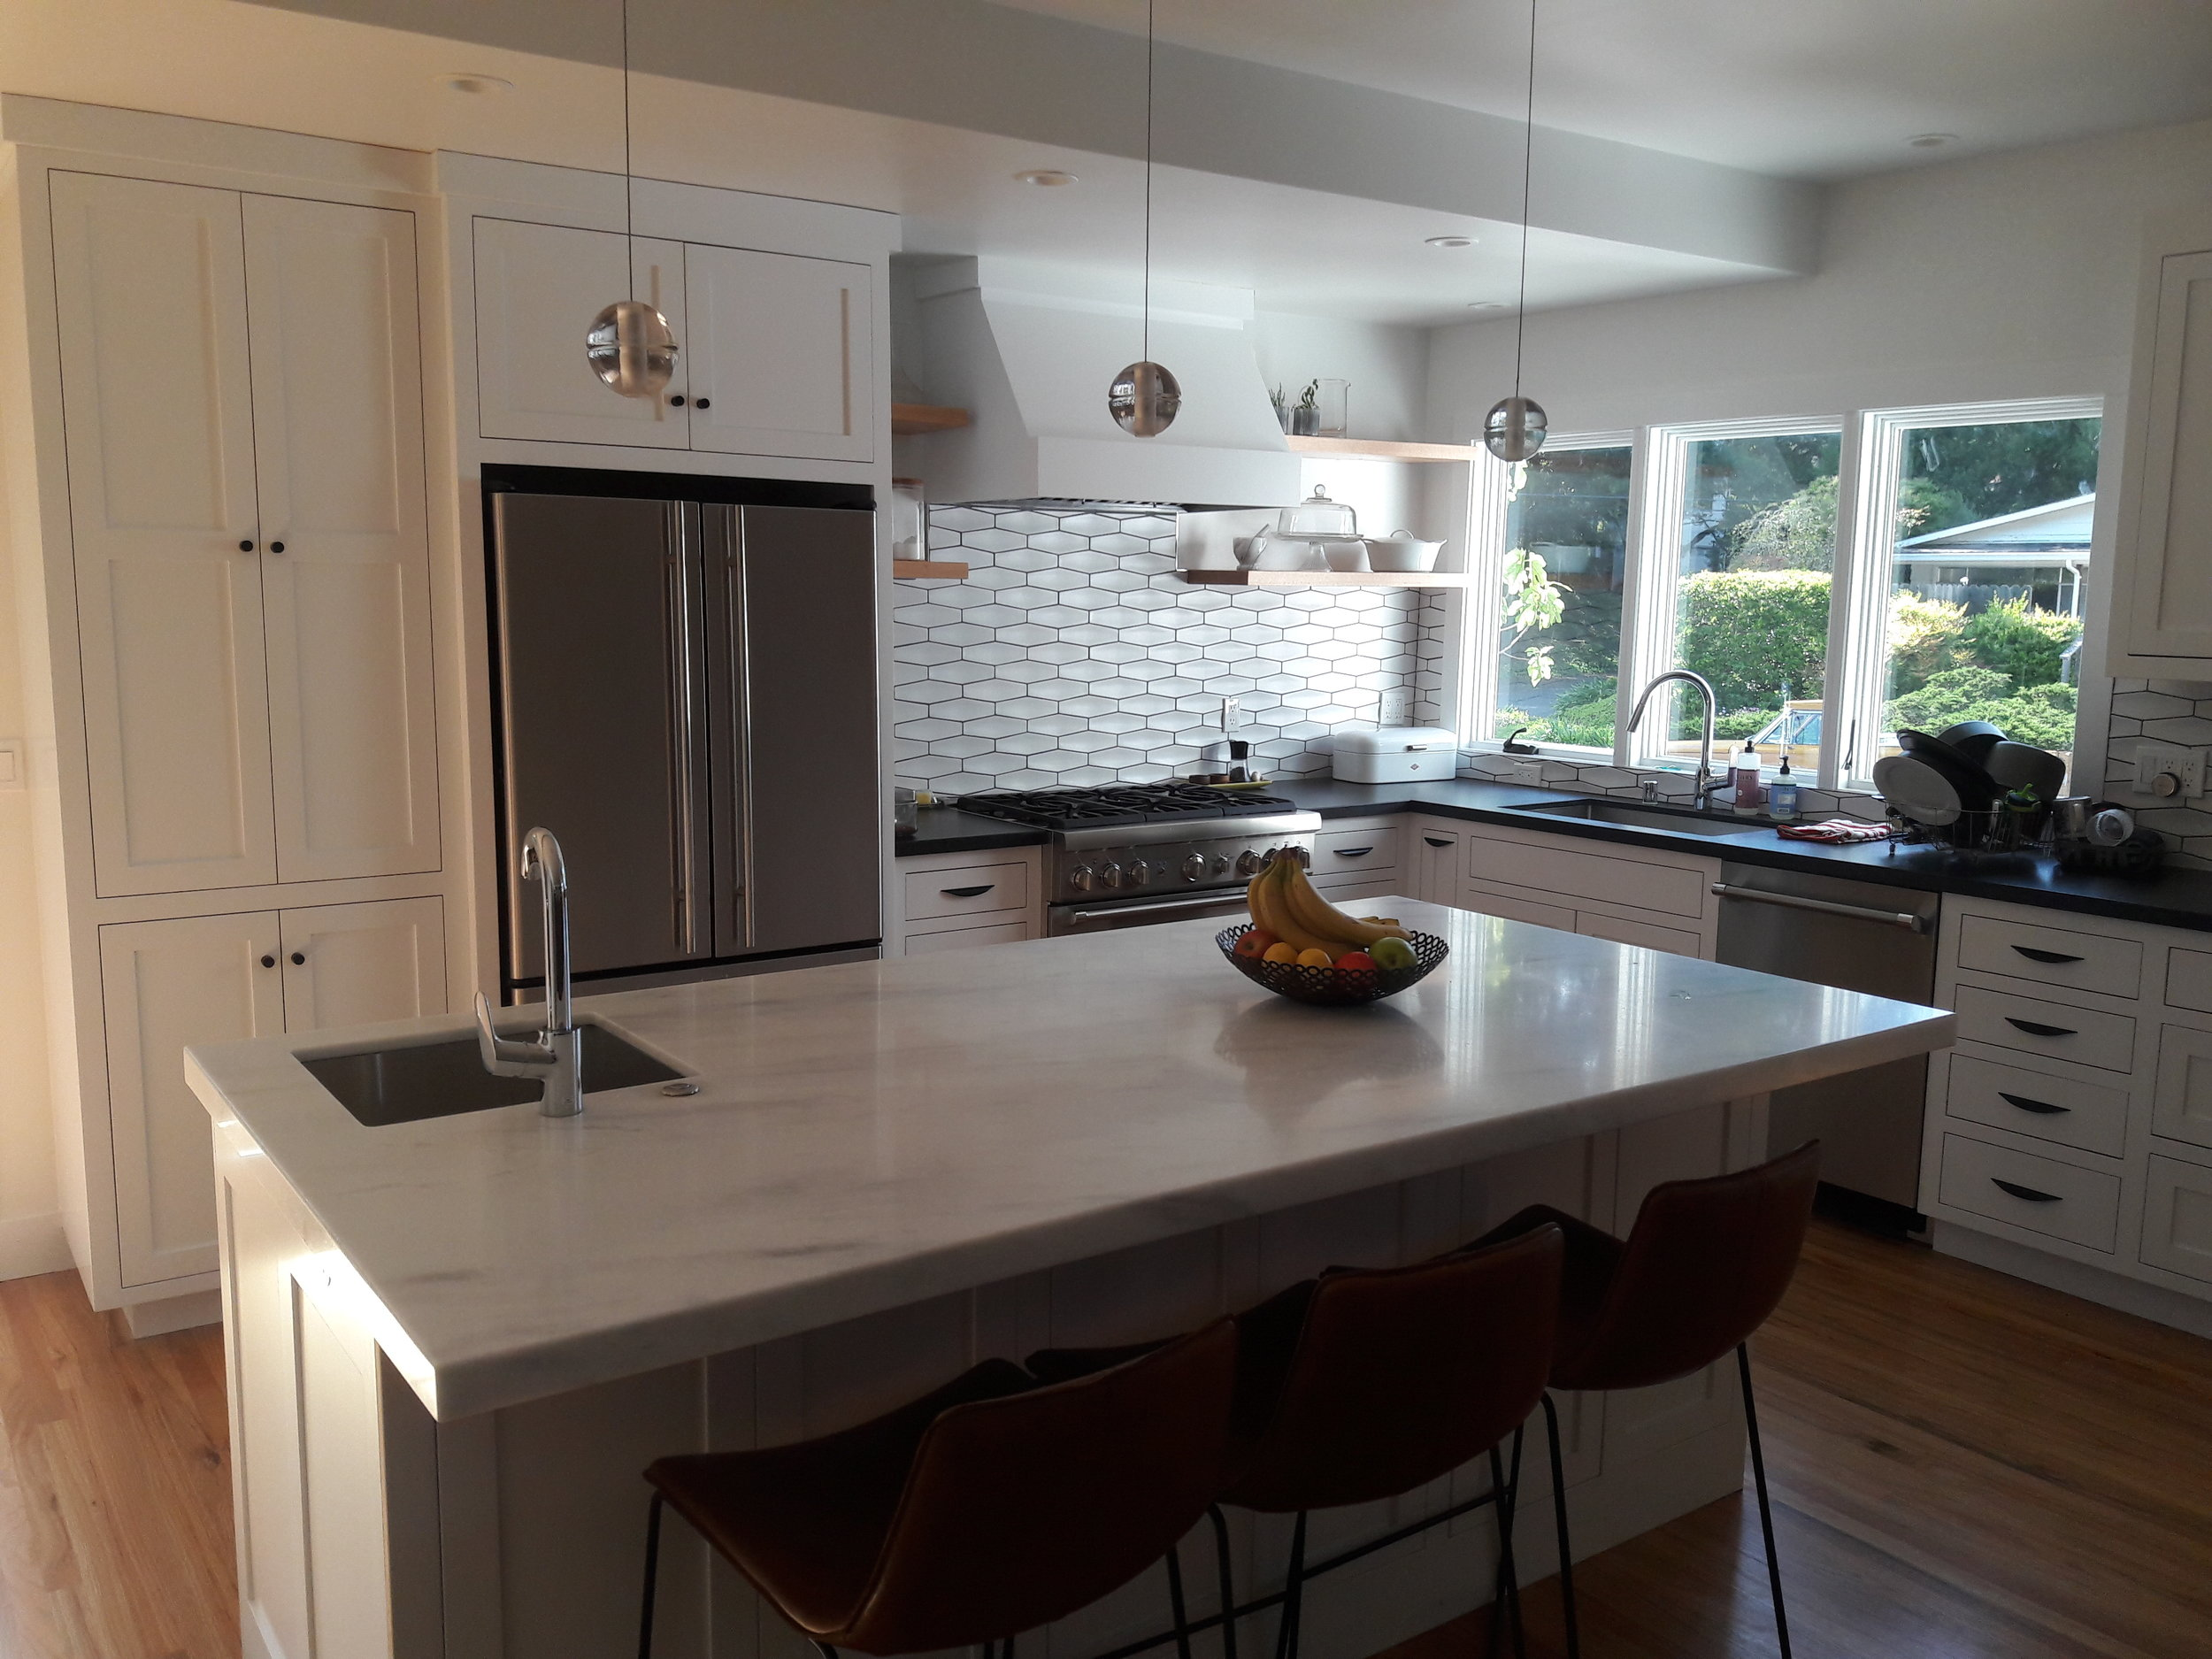 kane-construction-general-contractor-kitchen-remodel-healdsburg.jpg